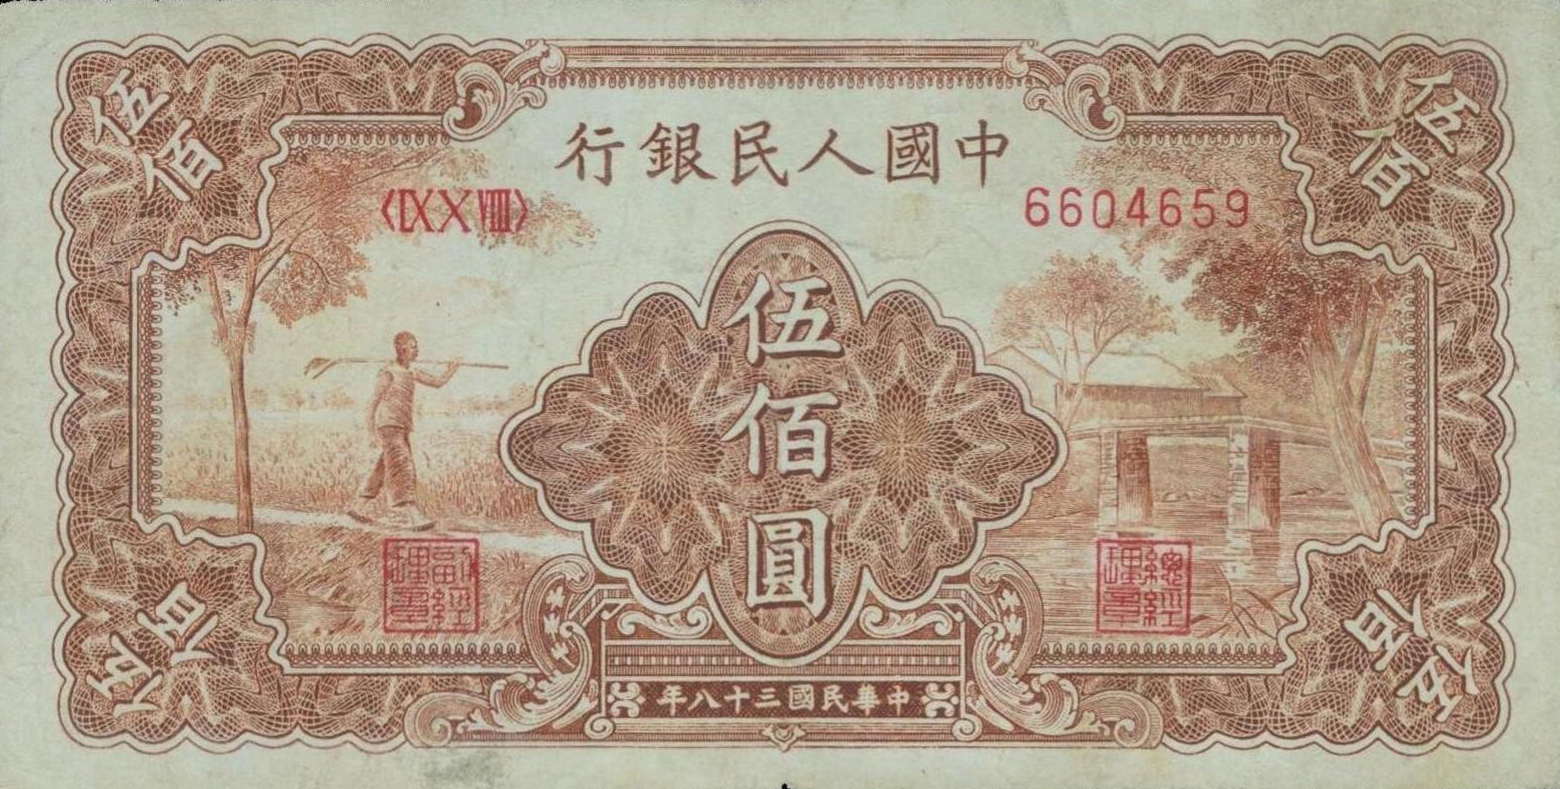 sample image for 1949 500 Yuan People's Bank of China